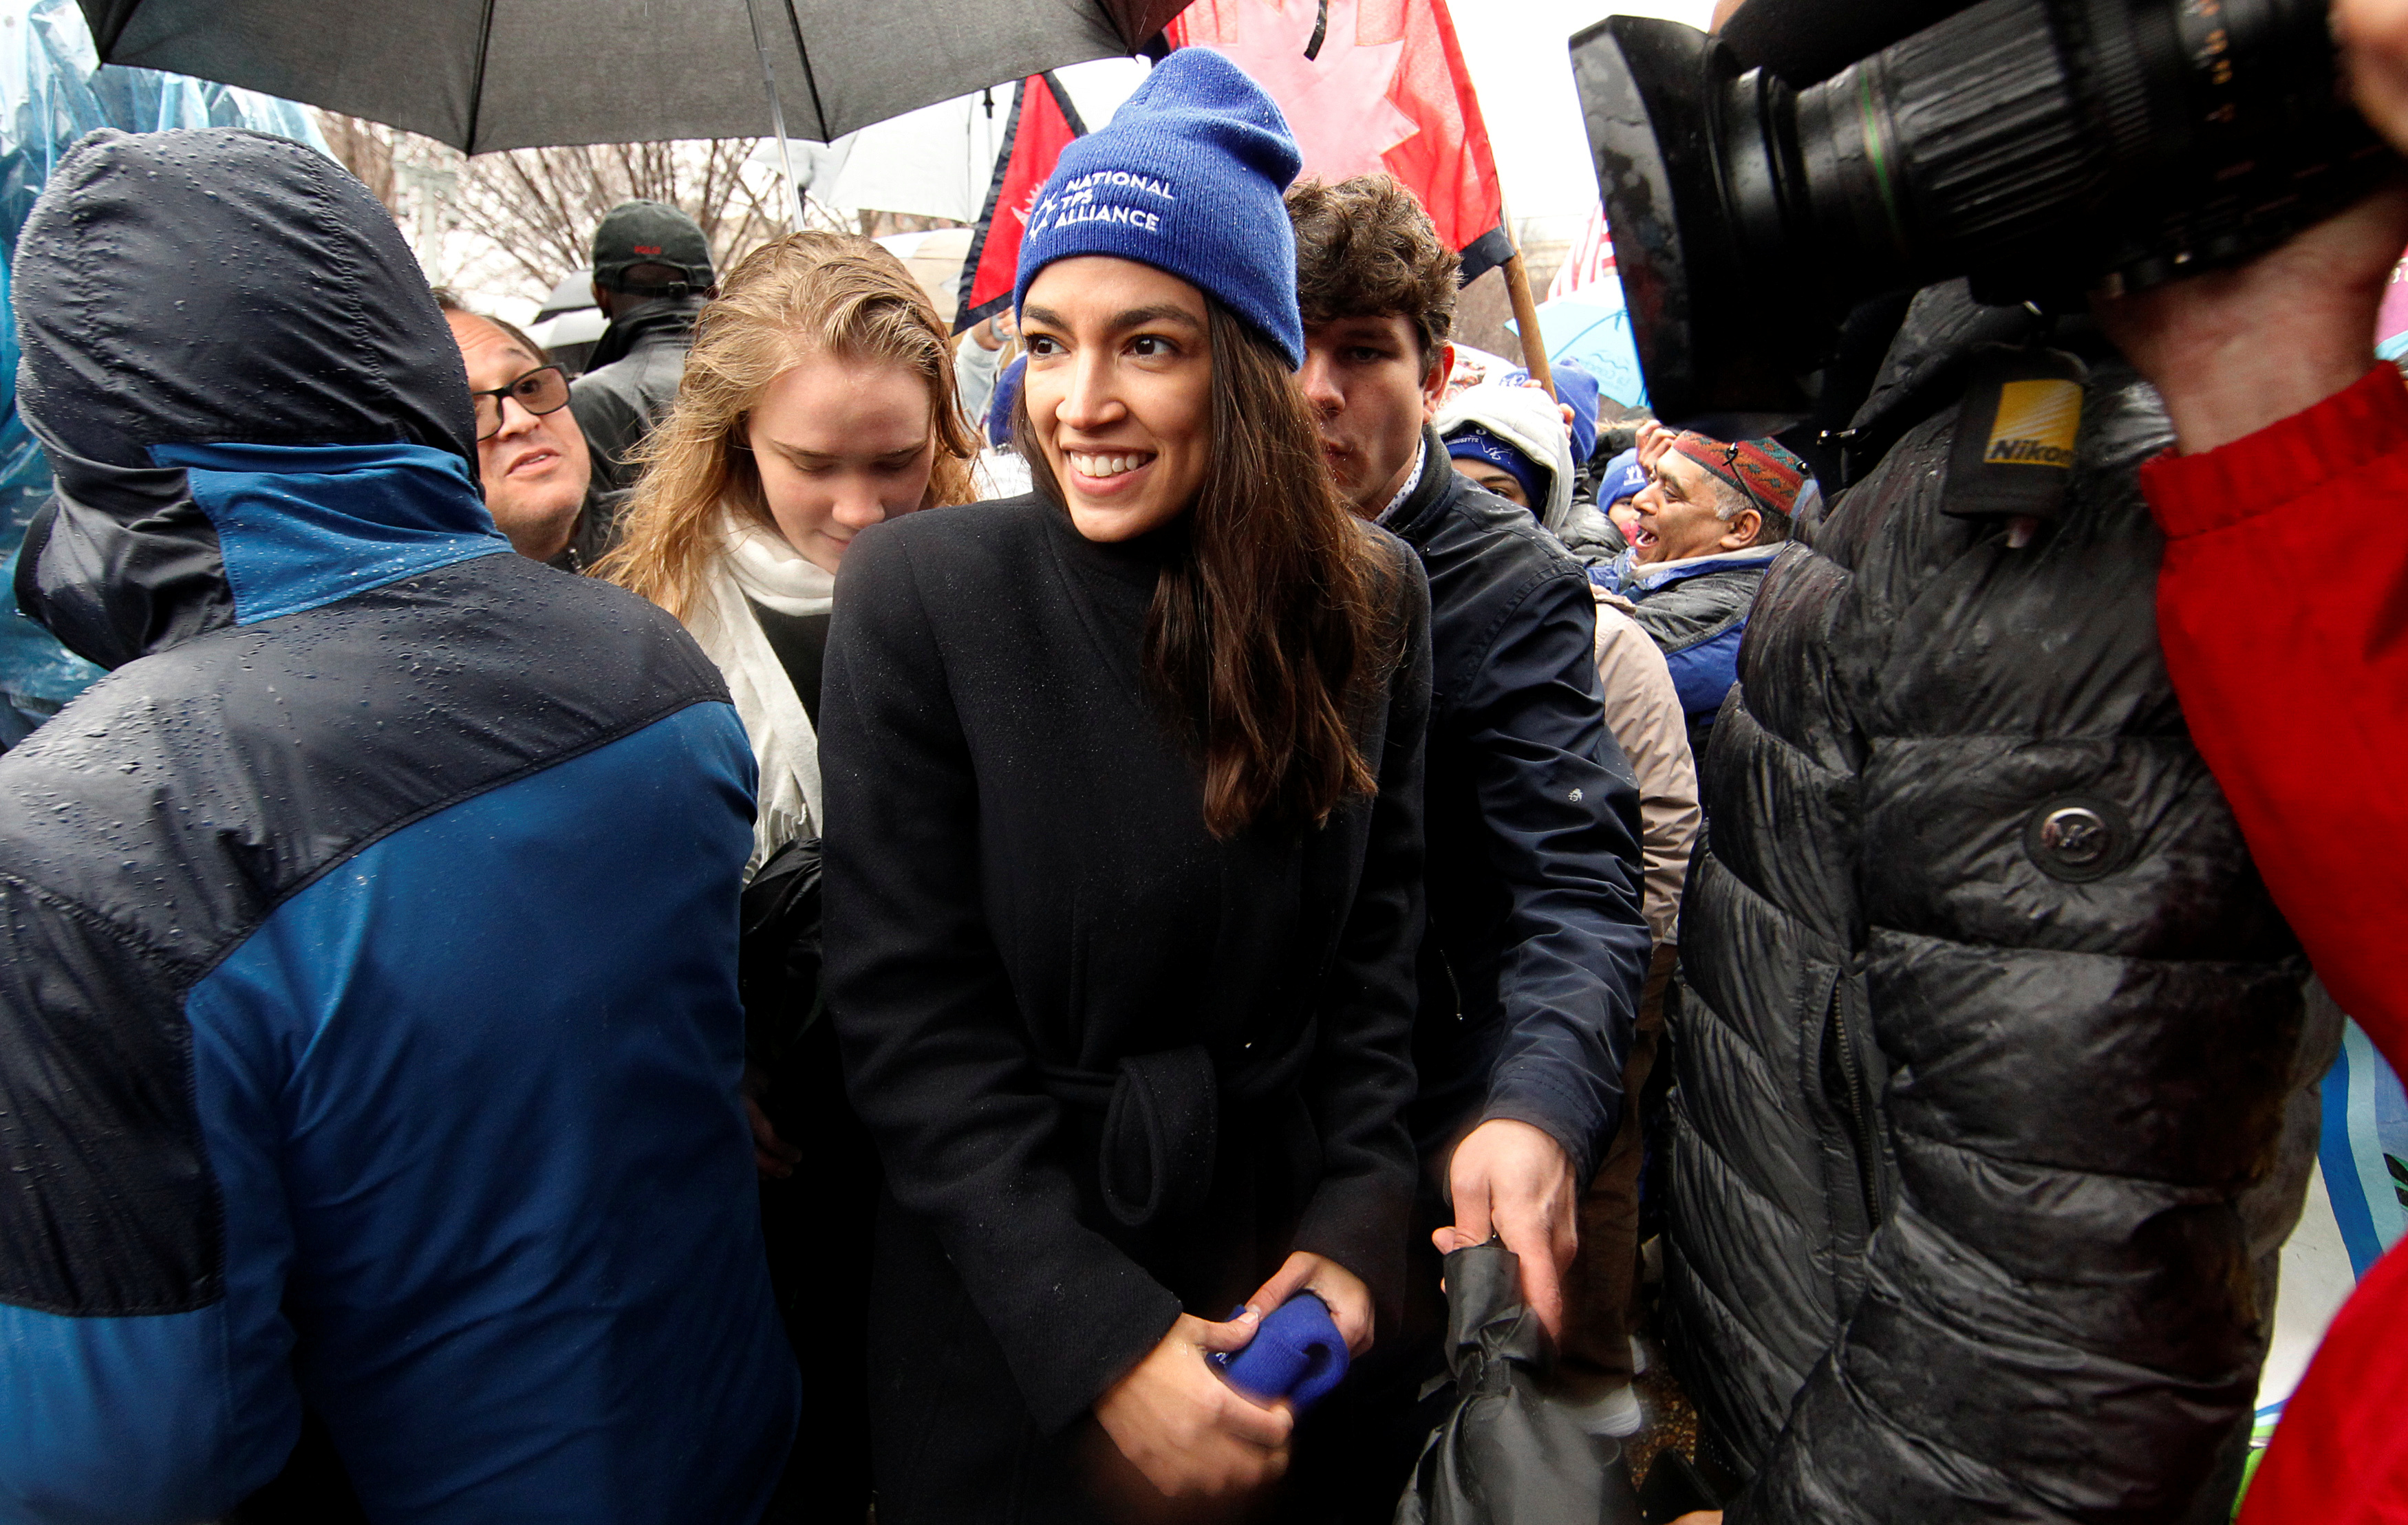 Rep. Alexandria Ocasio-Cortez addresses immigration rights activists during a rally in front of the White House in Washington